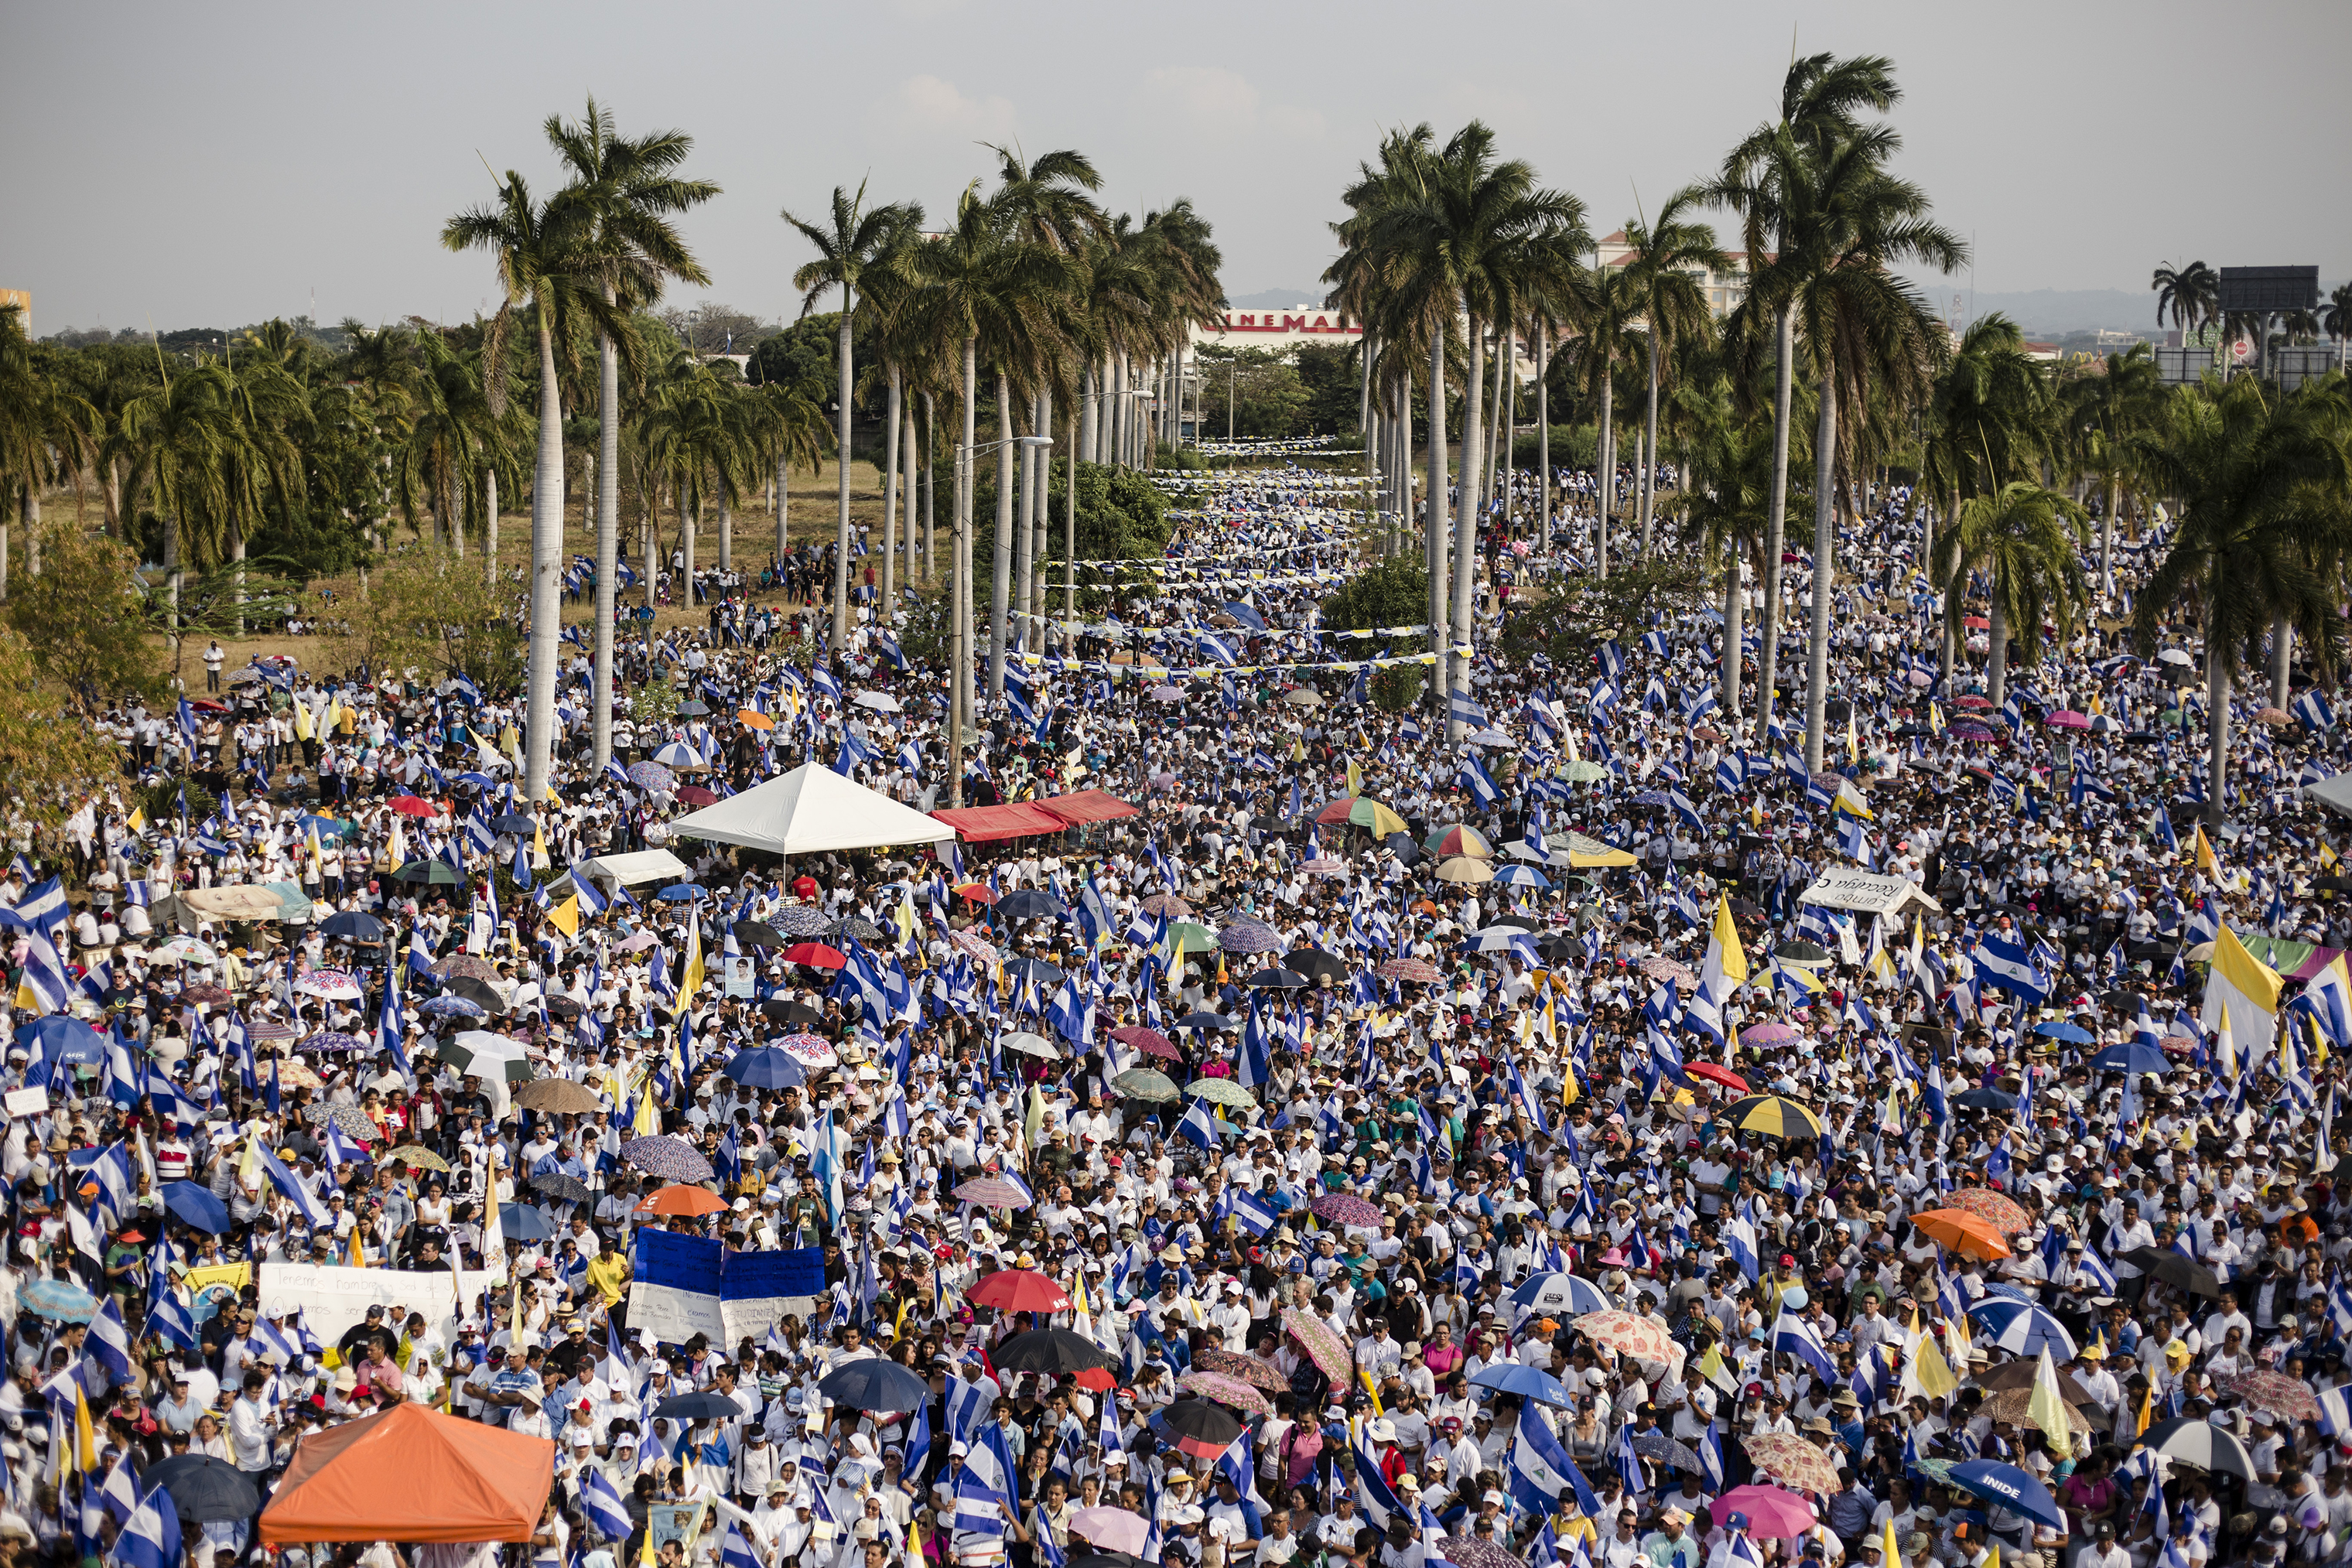 Thousands of people participate in a Catholic Church-organized rally in Managua on April 29.